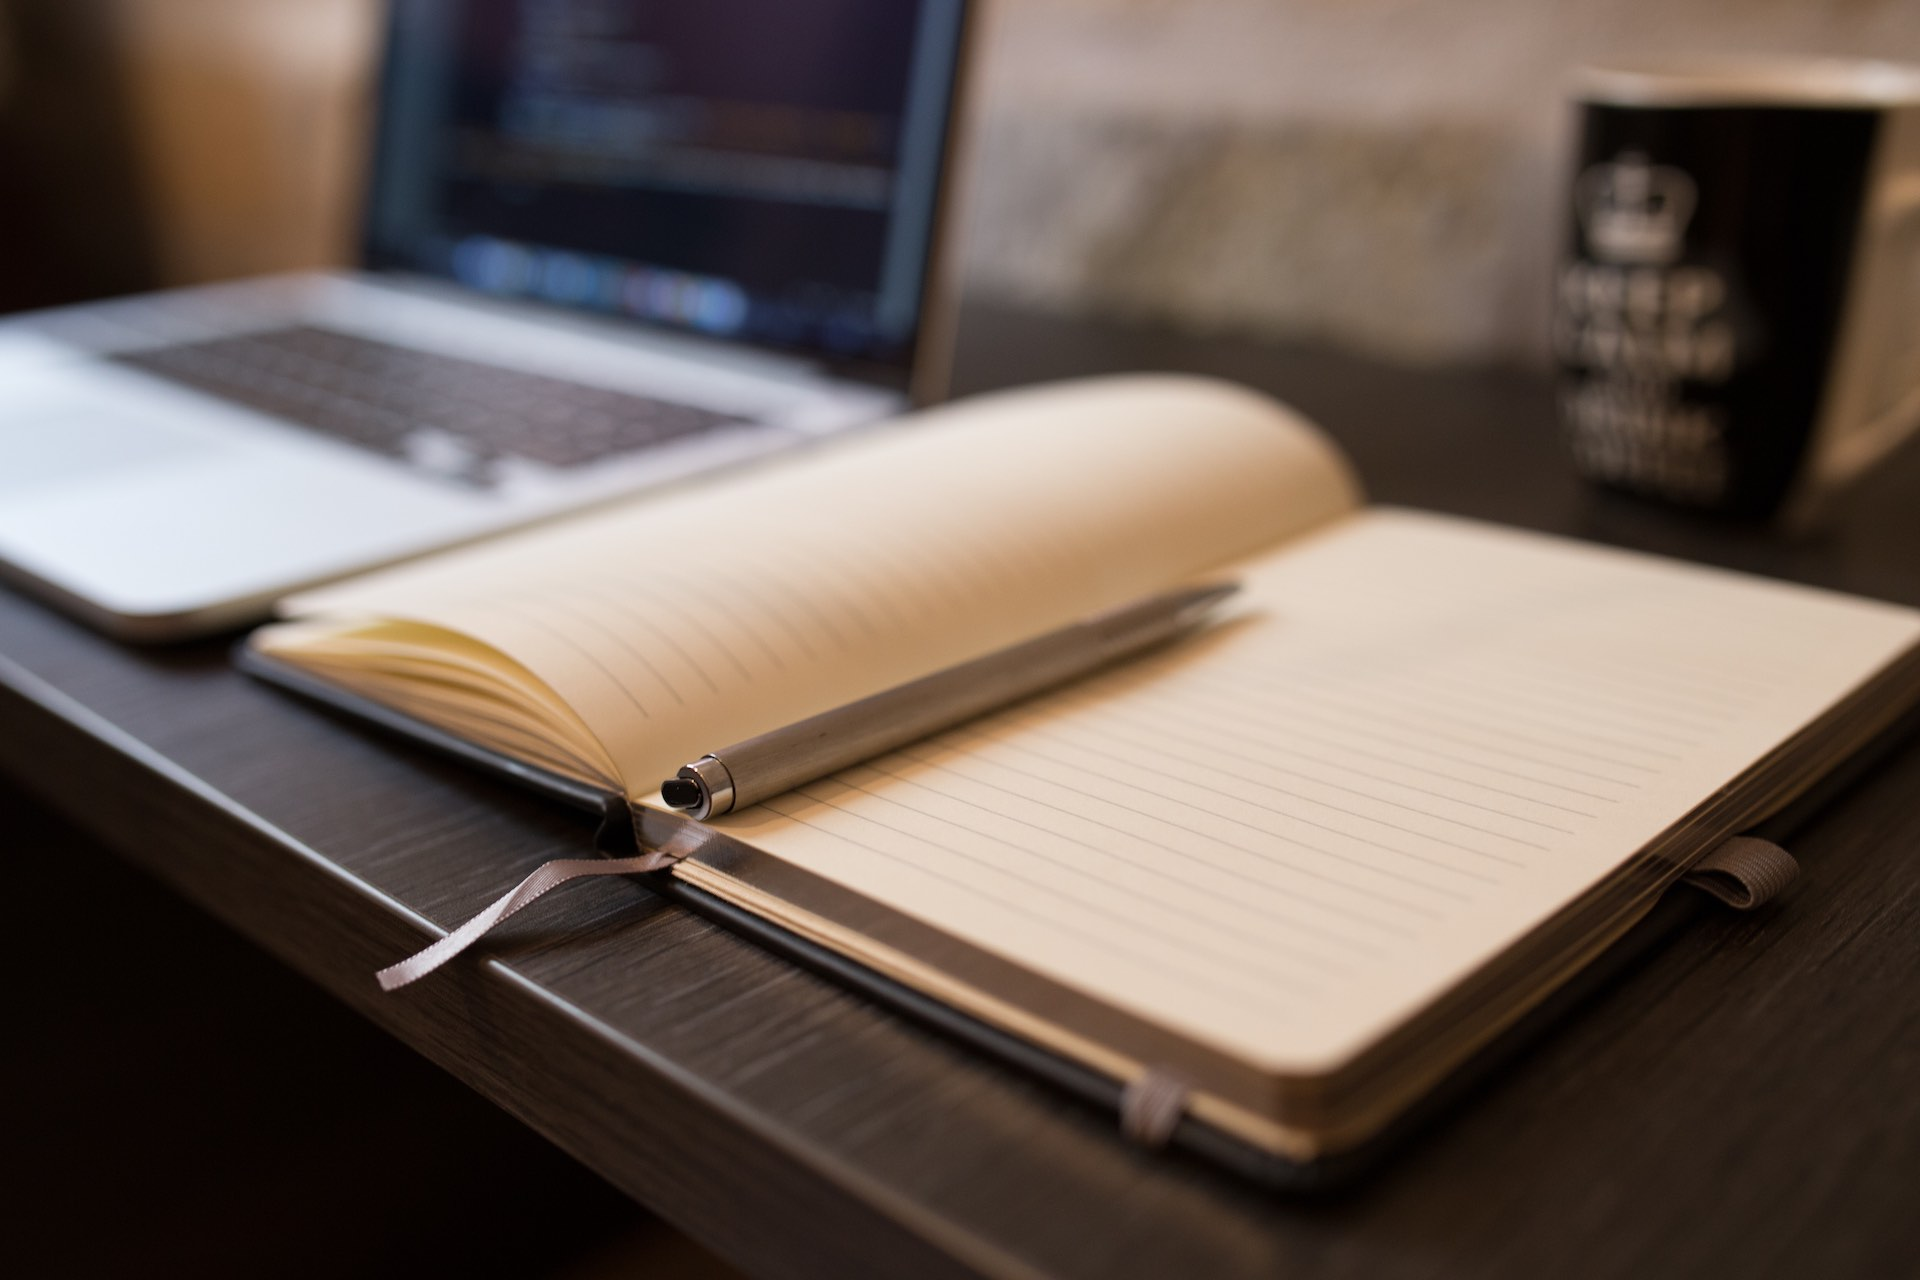 The image focuses on the empty pages of a notebook that sits beside a laptop and a cup of coffee. The indication is that the person is ready to take notes and rework their CV / resume.